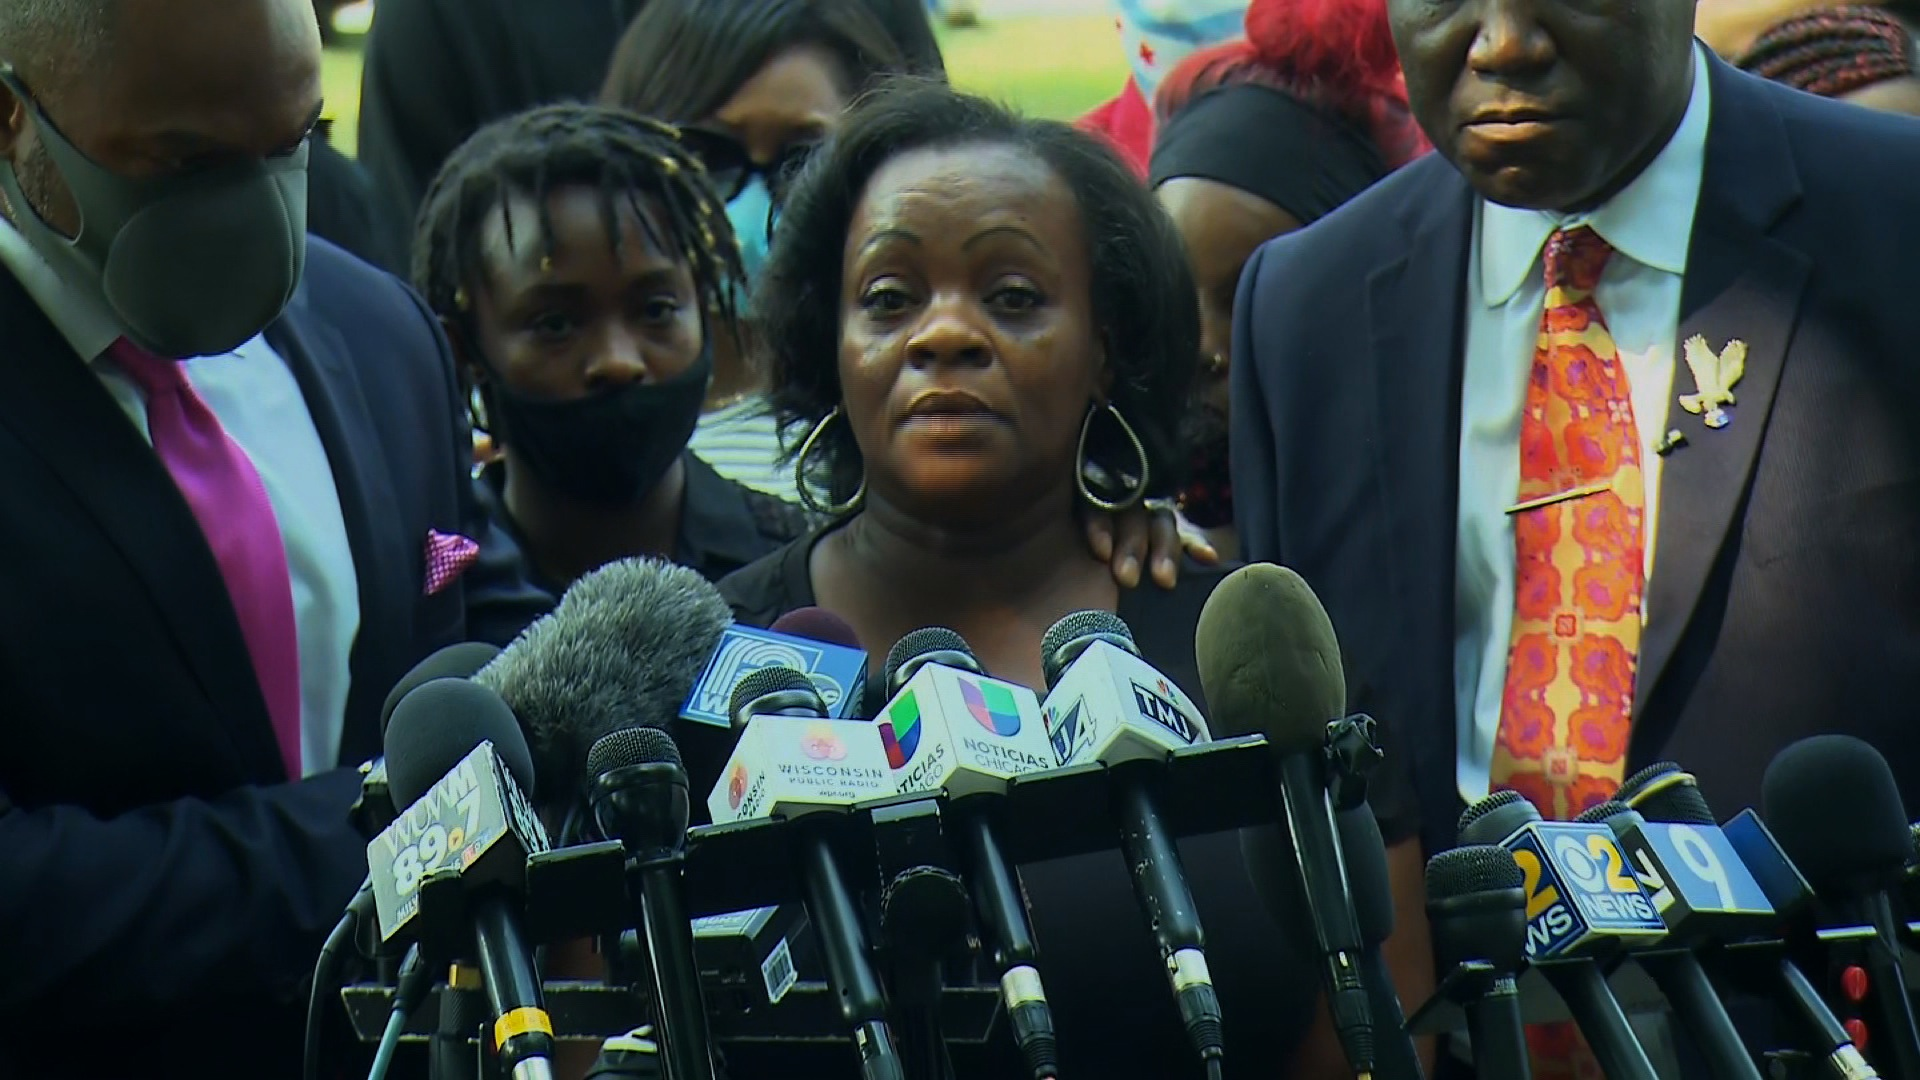 Julia Jackson, Jacob Blake's mother, speaks during a press conference in Kenosha, Wisconsin, on August 25.